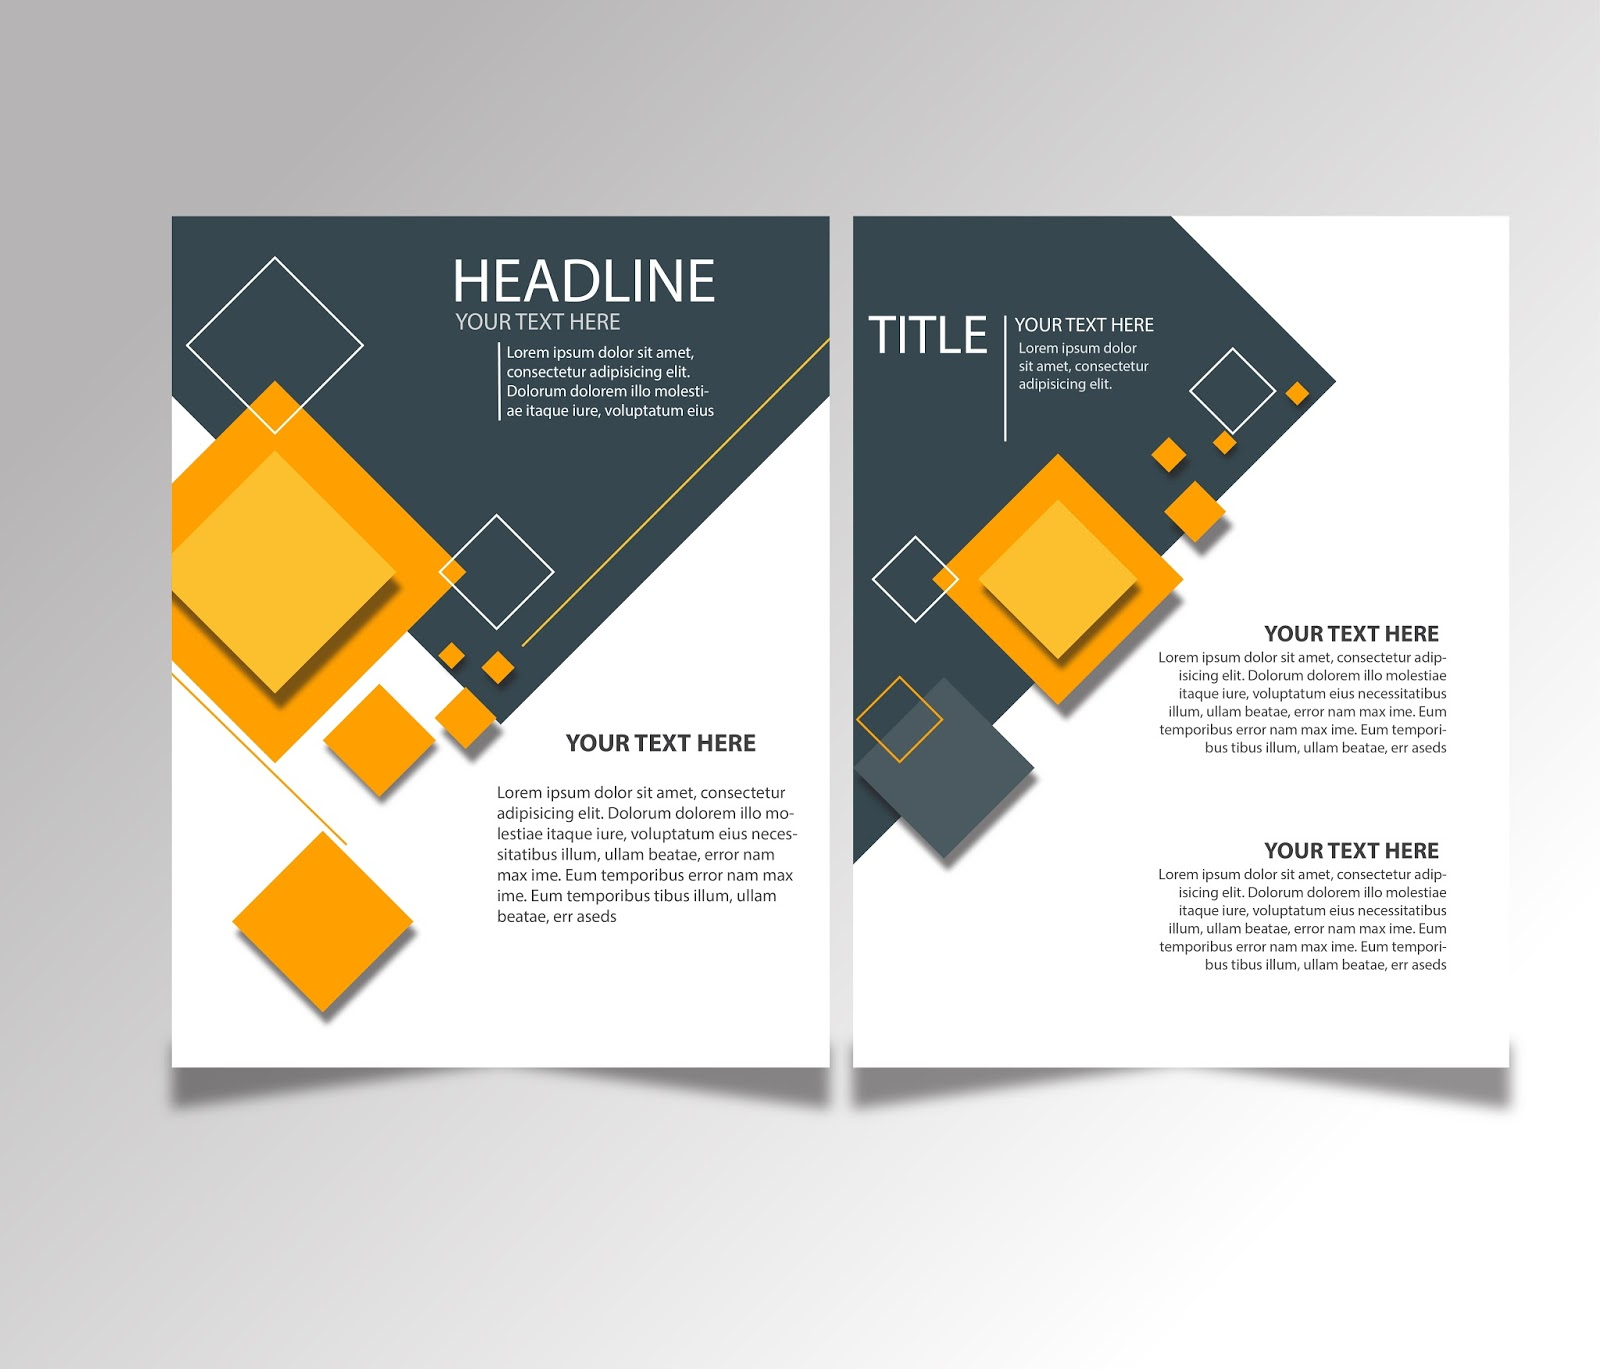 FREE DOWNLOAD BROCHURE DESIGN TEMPLATES AI FILES Ideosprocess - Free brochure design templates